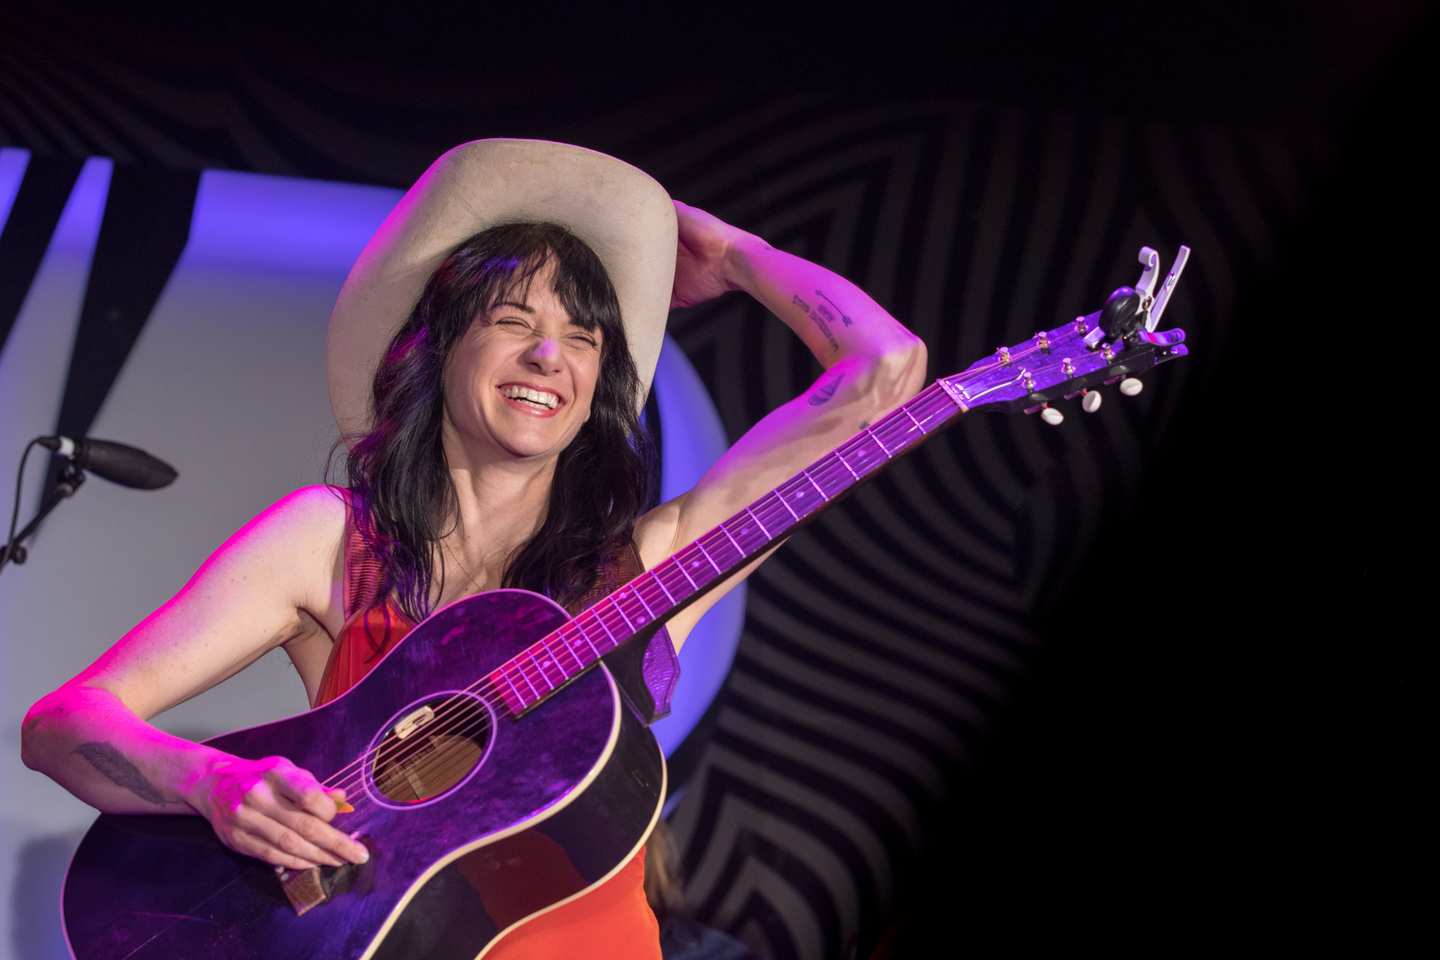 Nikki Lane, presented by Pandora. Photo by Cal Holman